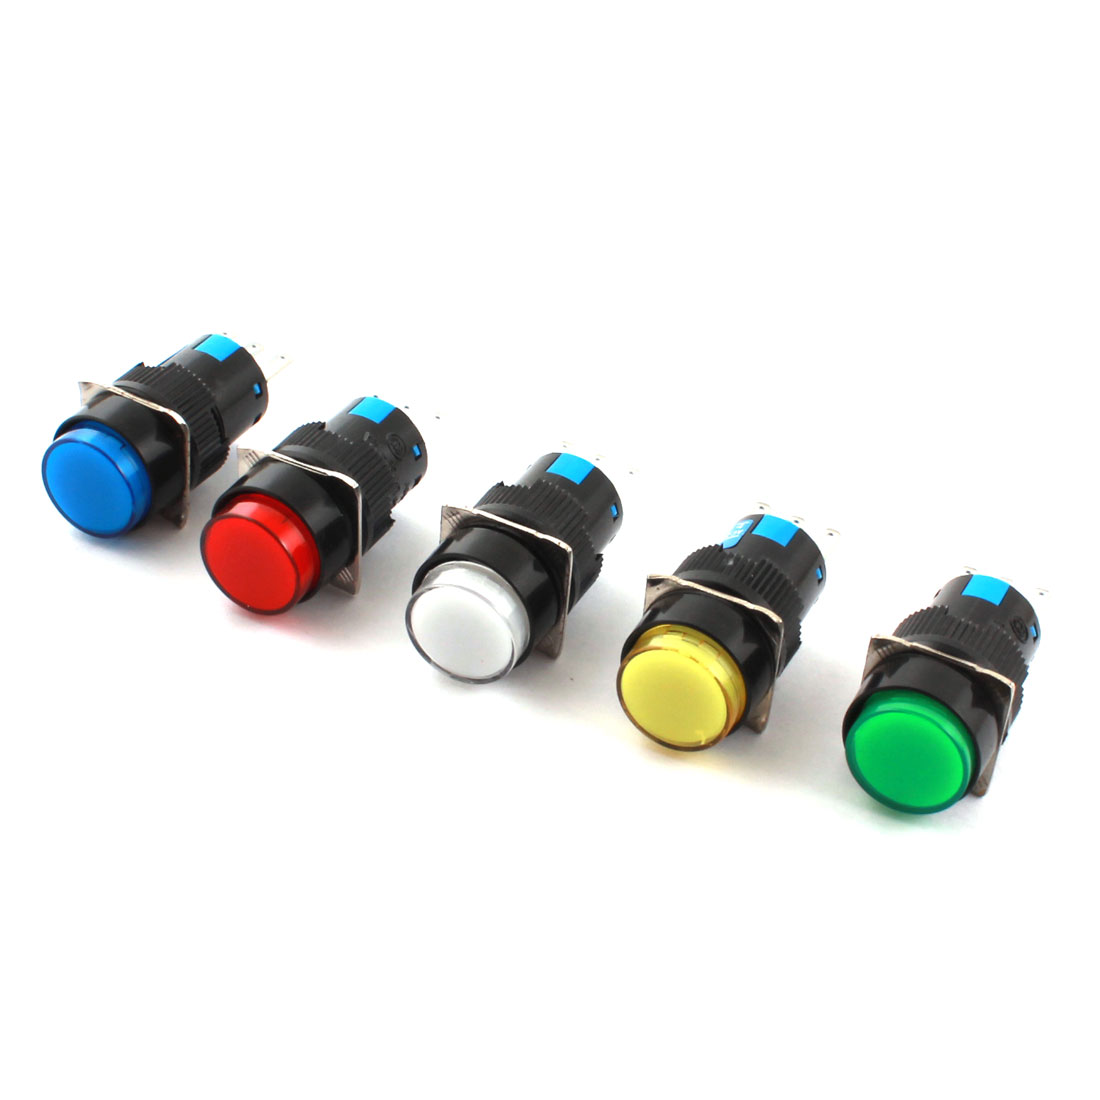 5 Pcs AC 250V 5A Mixed Color Button 16mm Thread Panel Mount SPDT 3 Pins Locking Type Round Head Pushbutton Switch